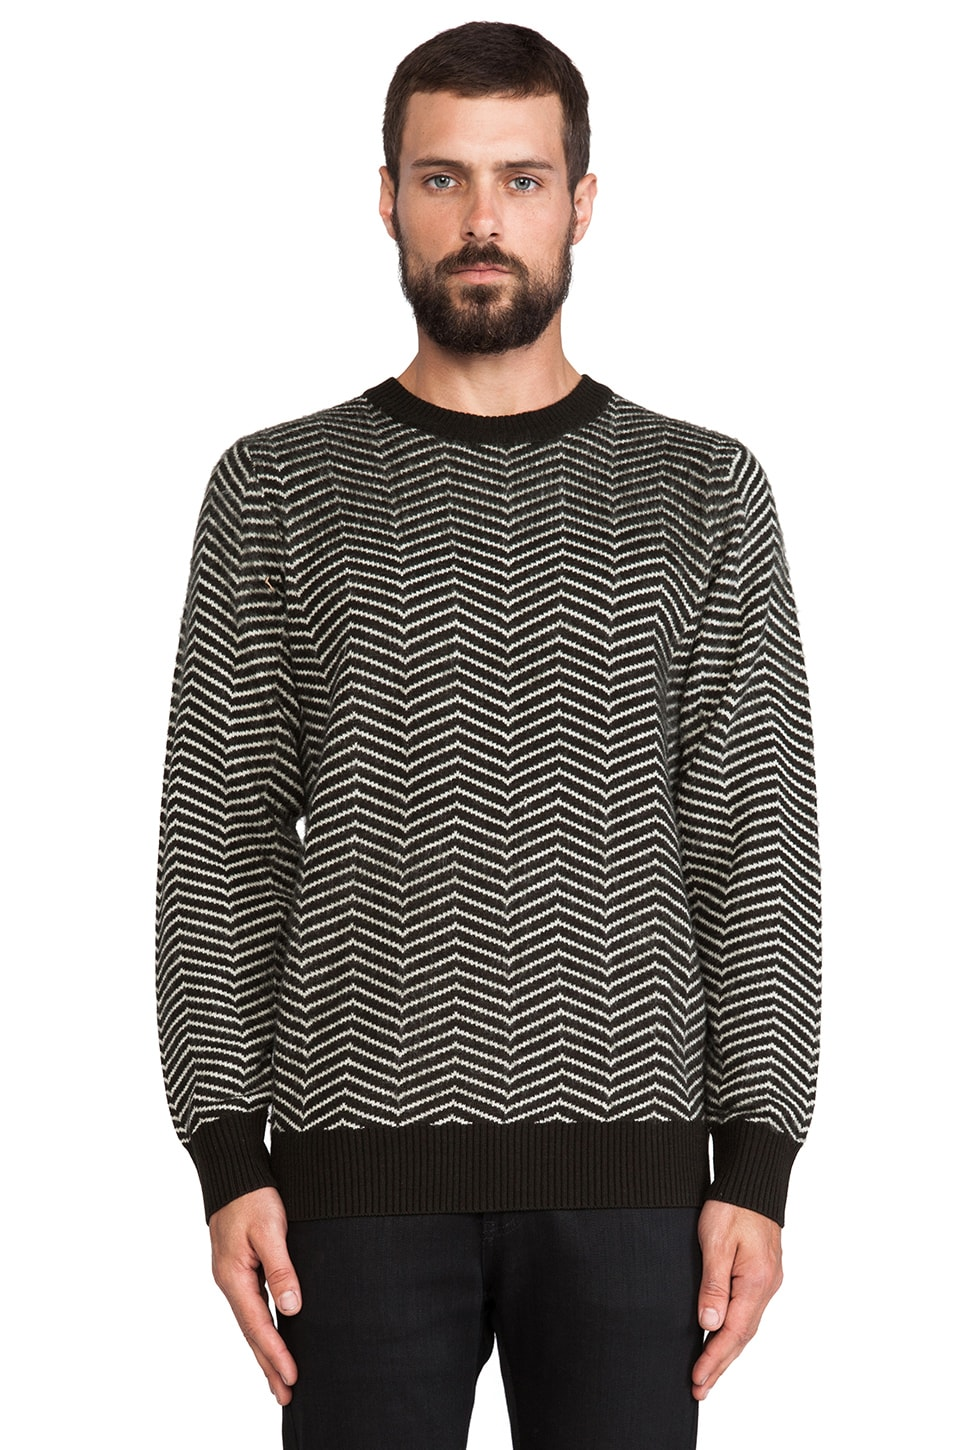 Brixton Gully Sweater in Black/ White